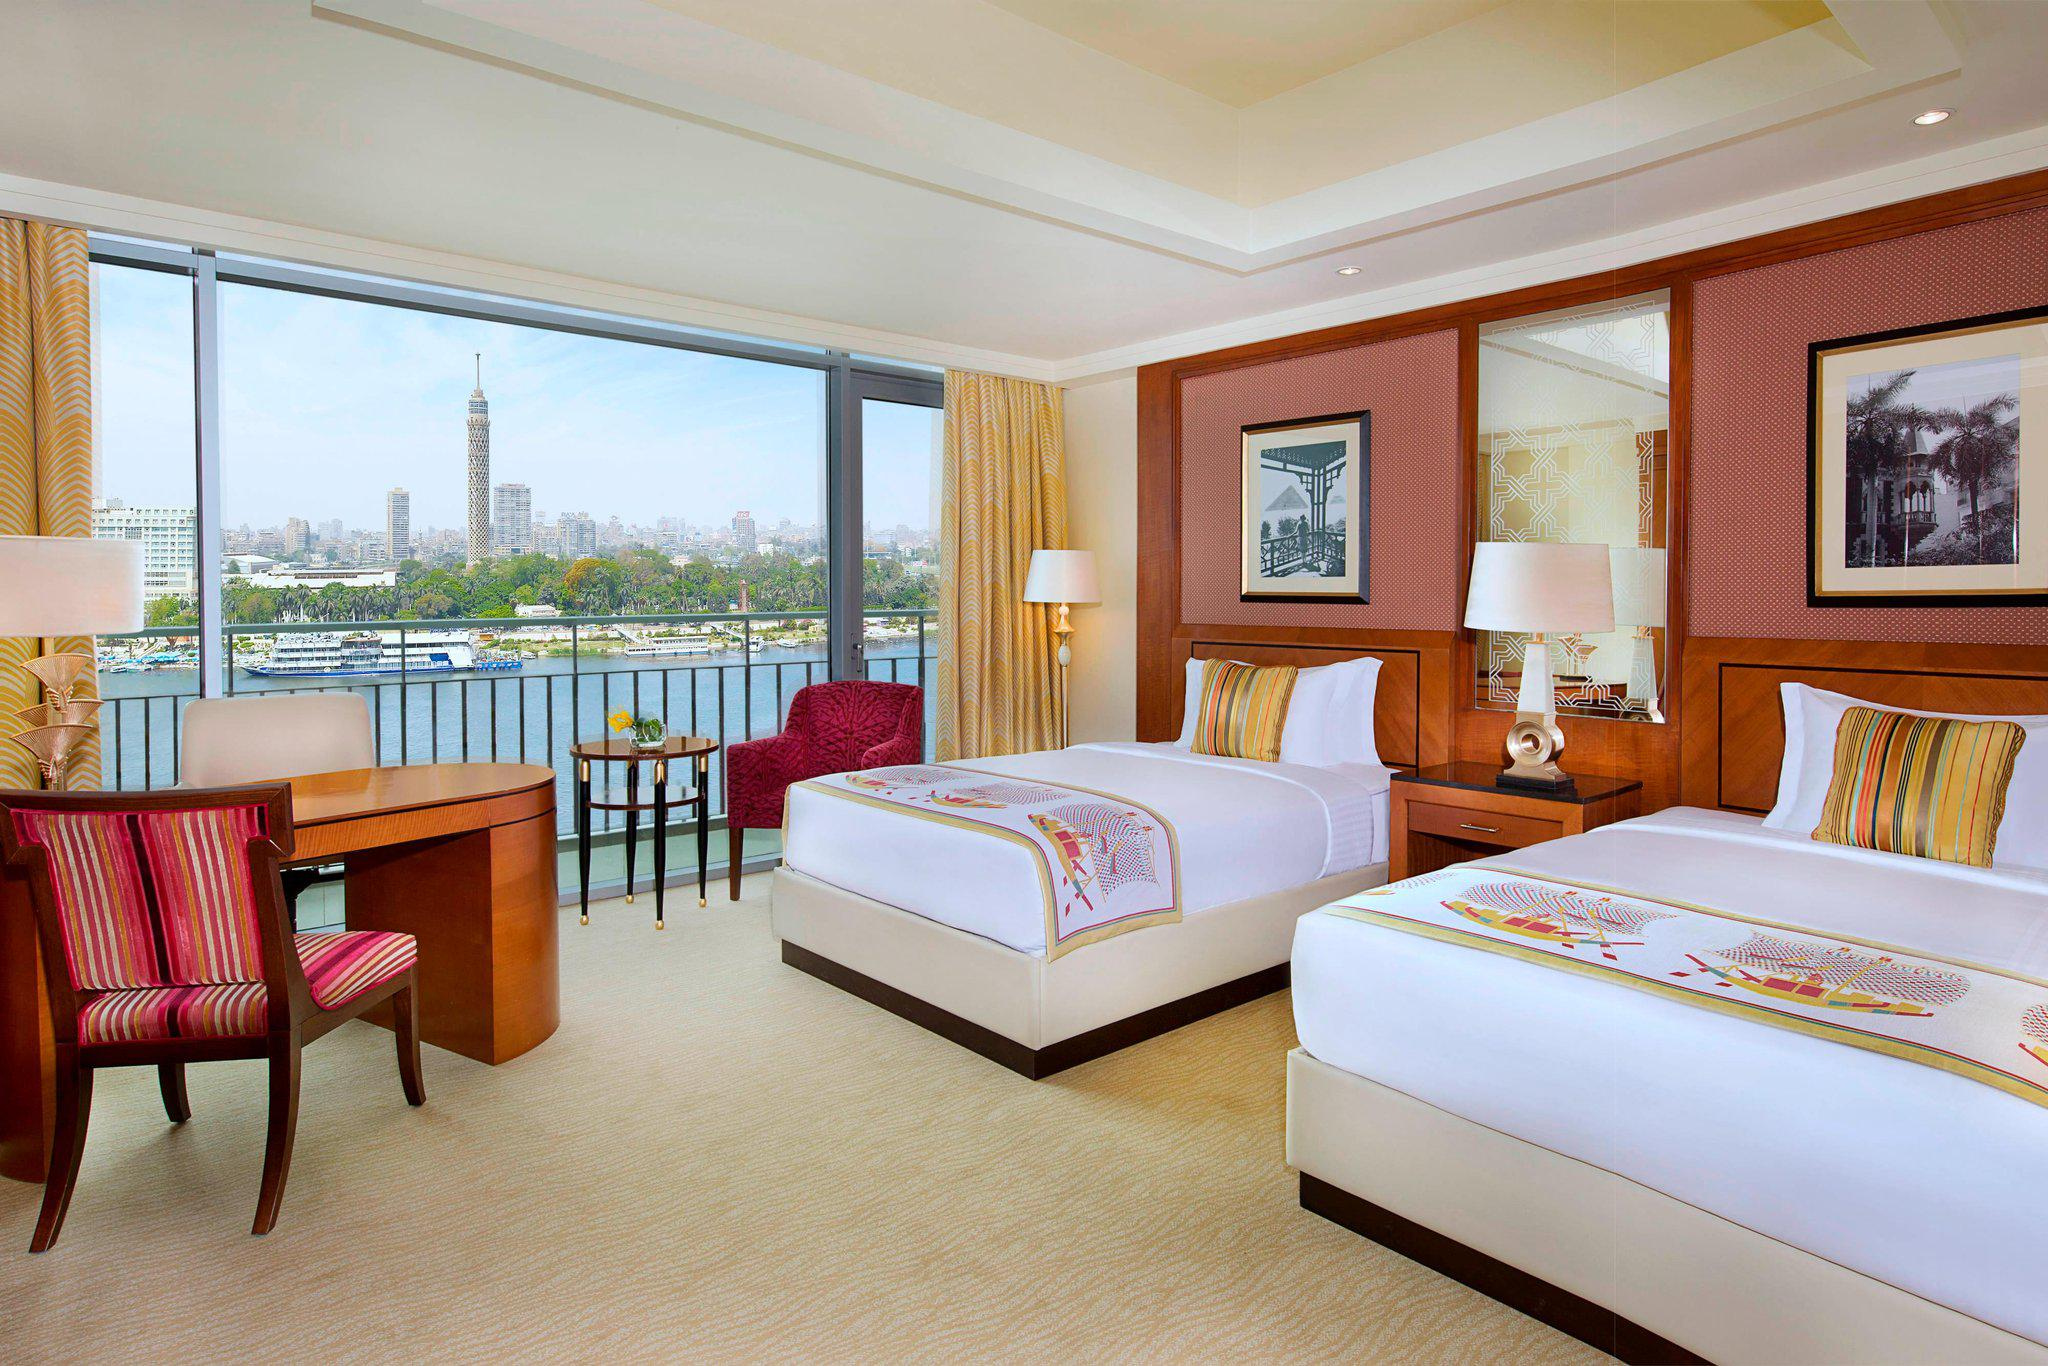 The Nile Ritz-Carlton, Cairo